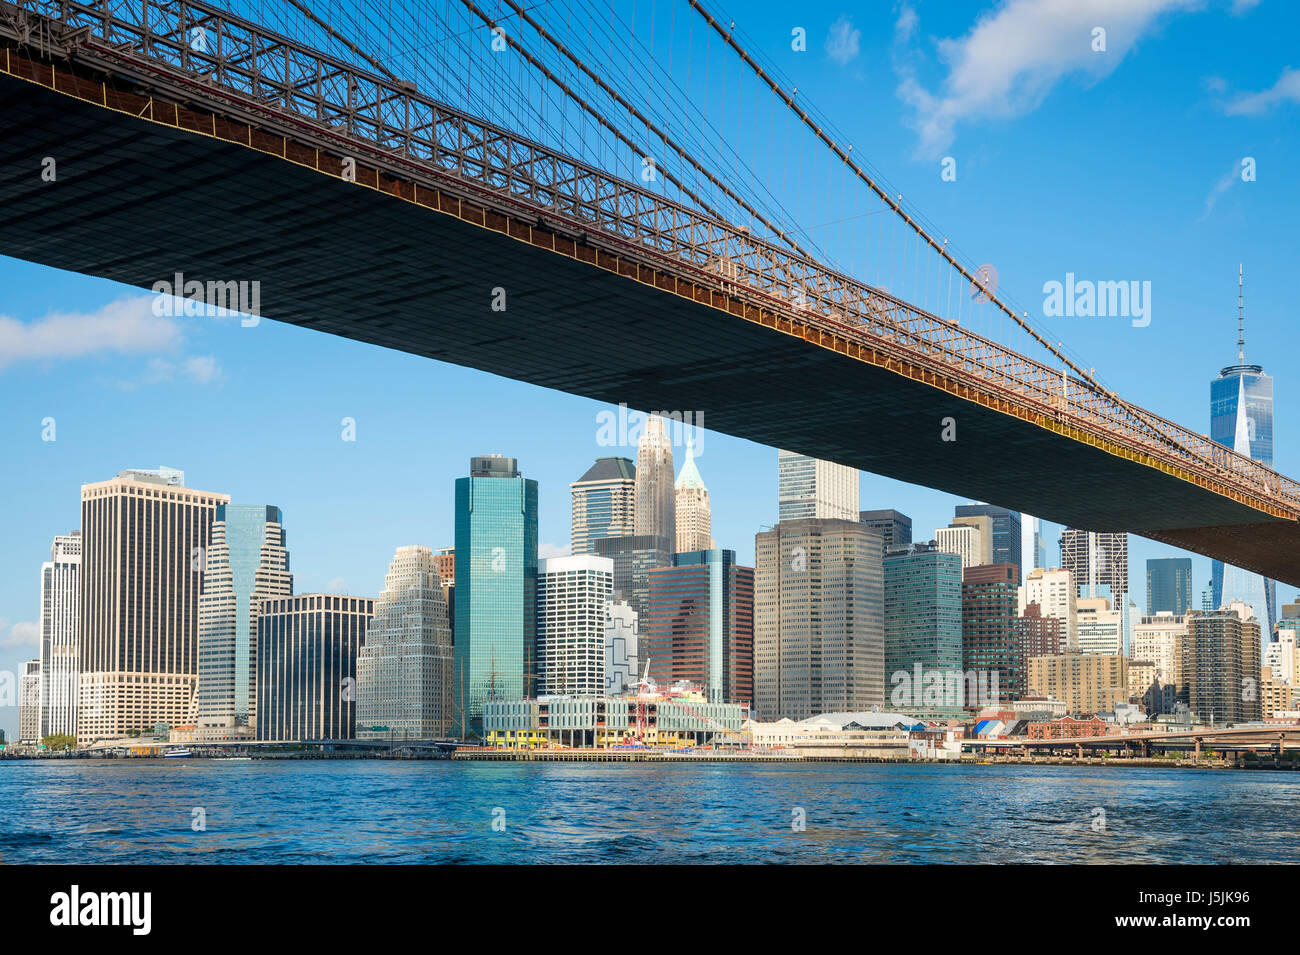 Bright scenic view of the Brooklyn Bridge with the Lower Manhattan skyline from the East River Stock Photo